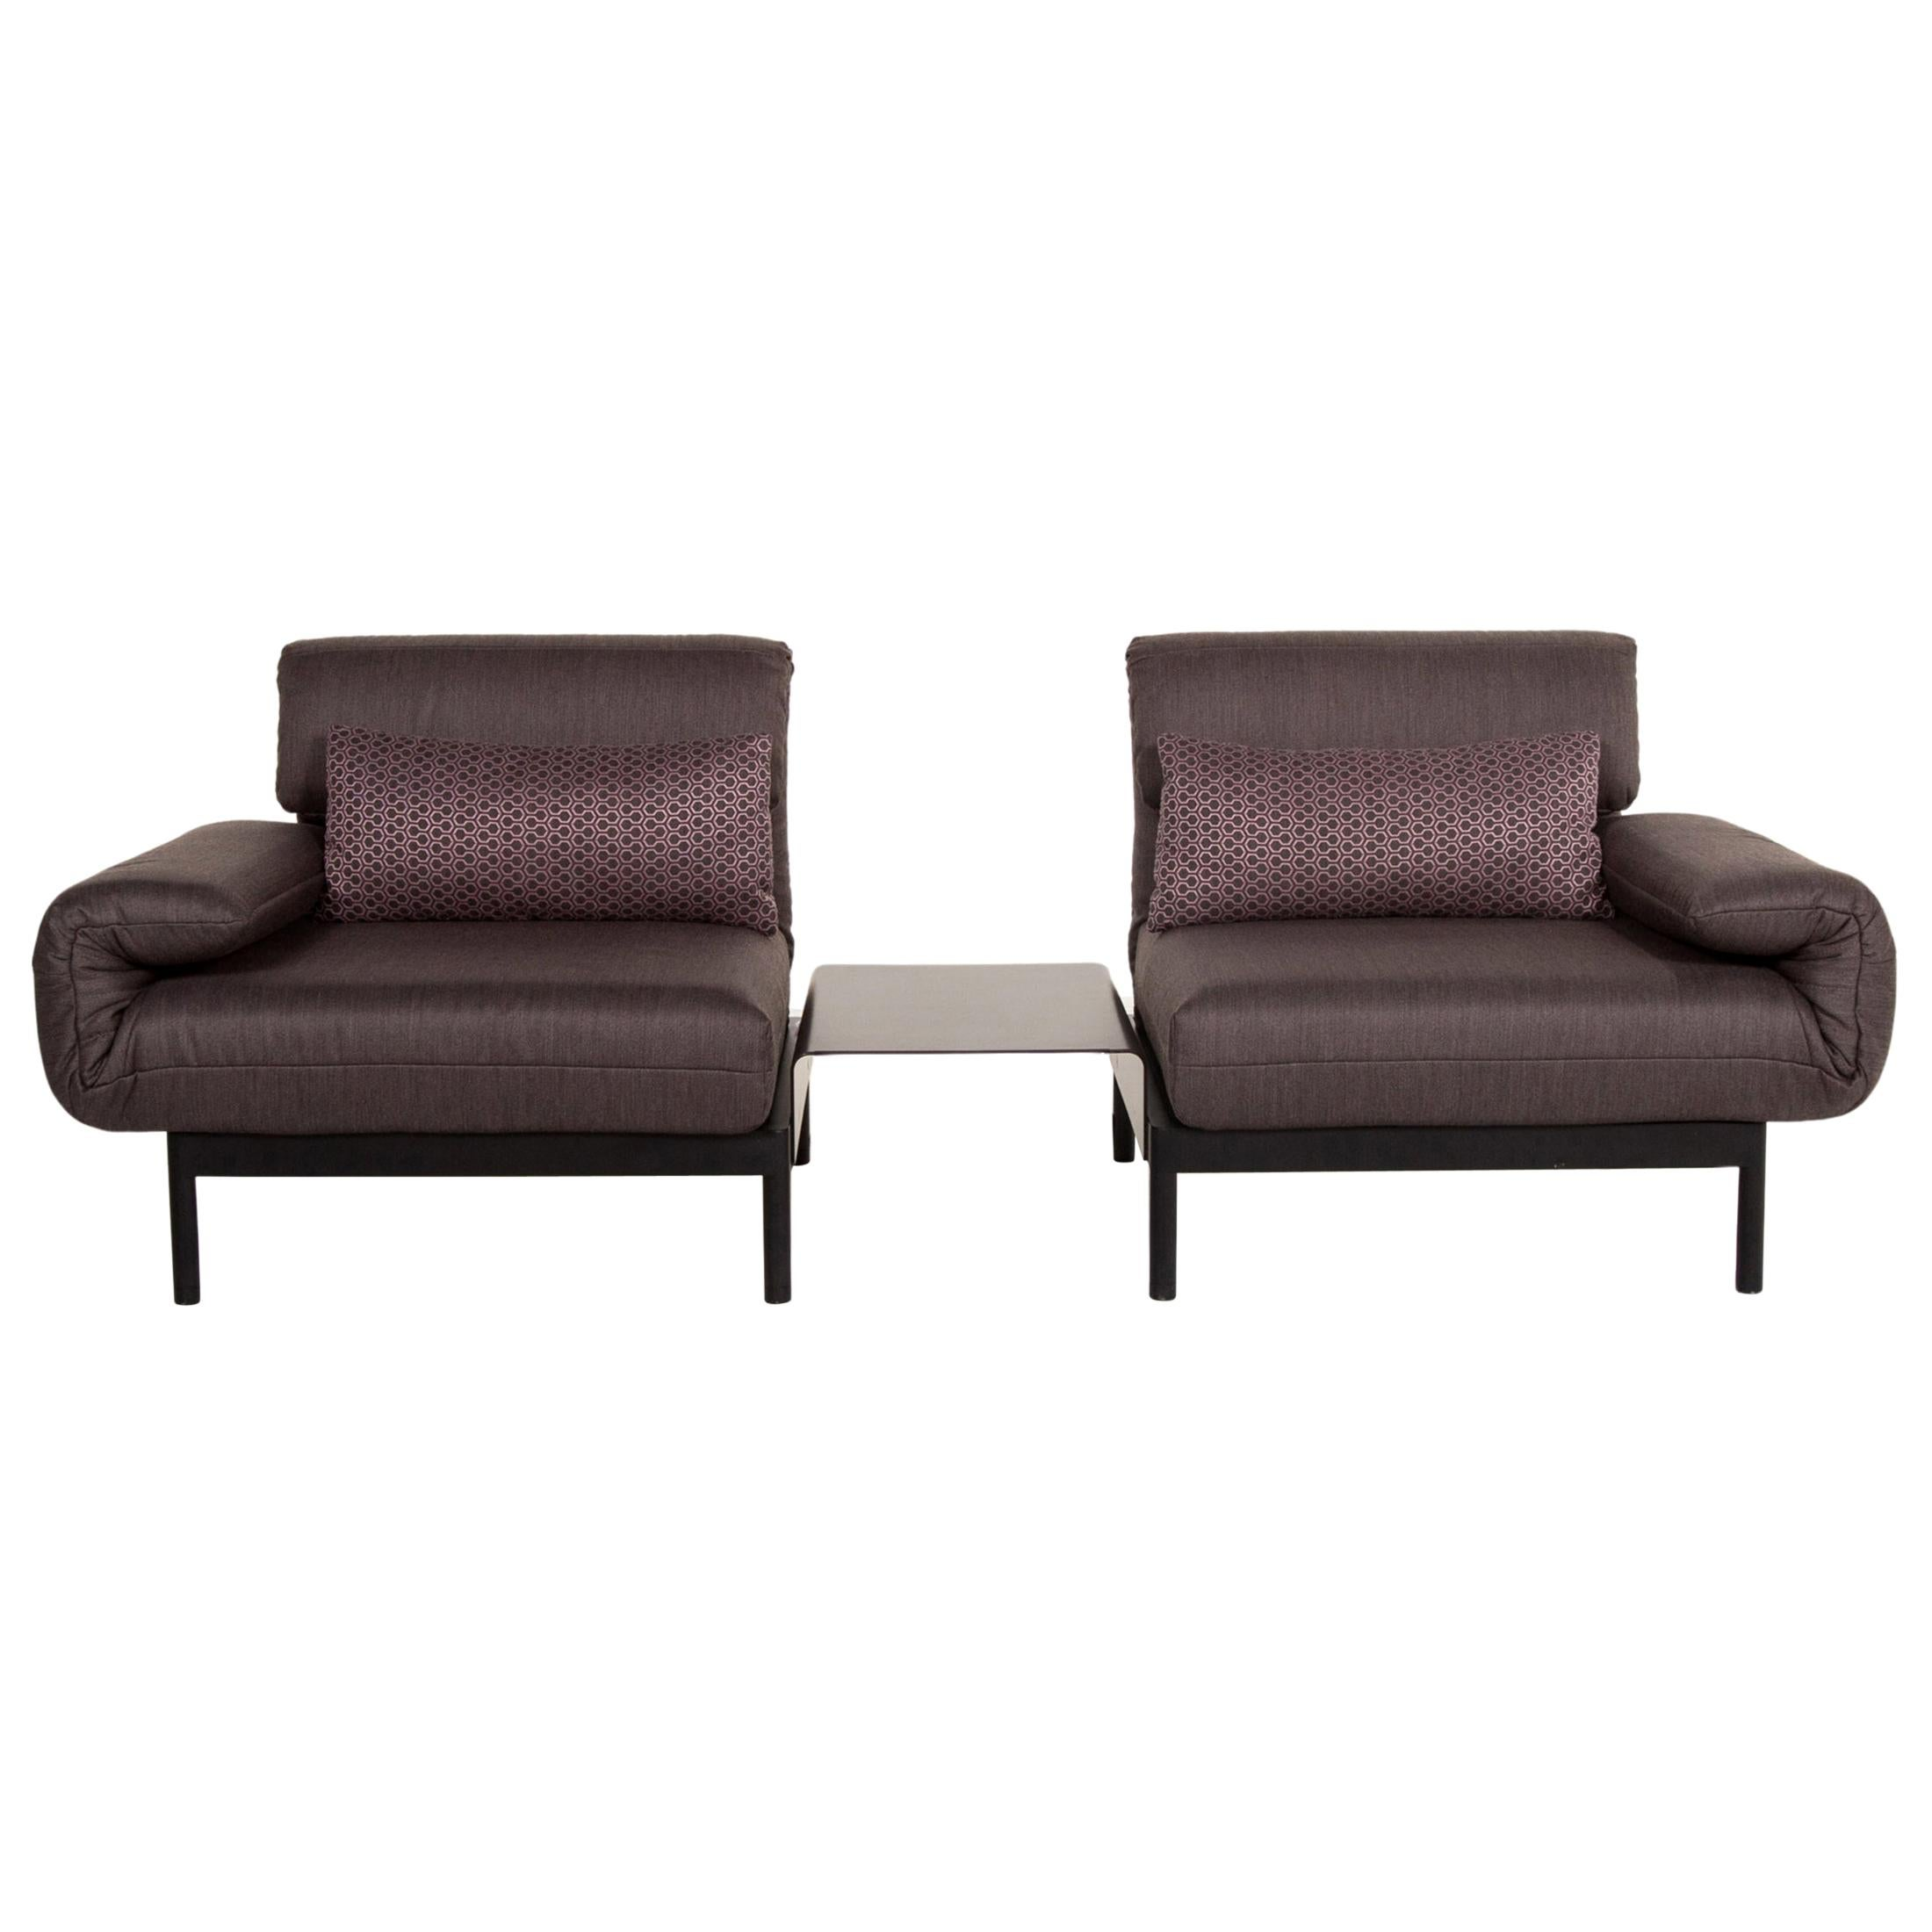 Rolf Benz Plura Fabric Sofa Anthracite Taupe Relax Function Sofa Bed Sleep